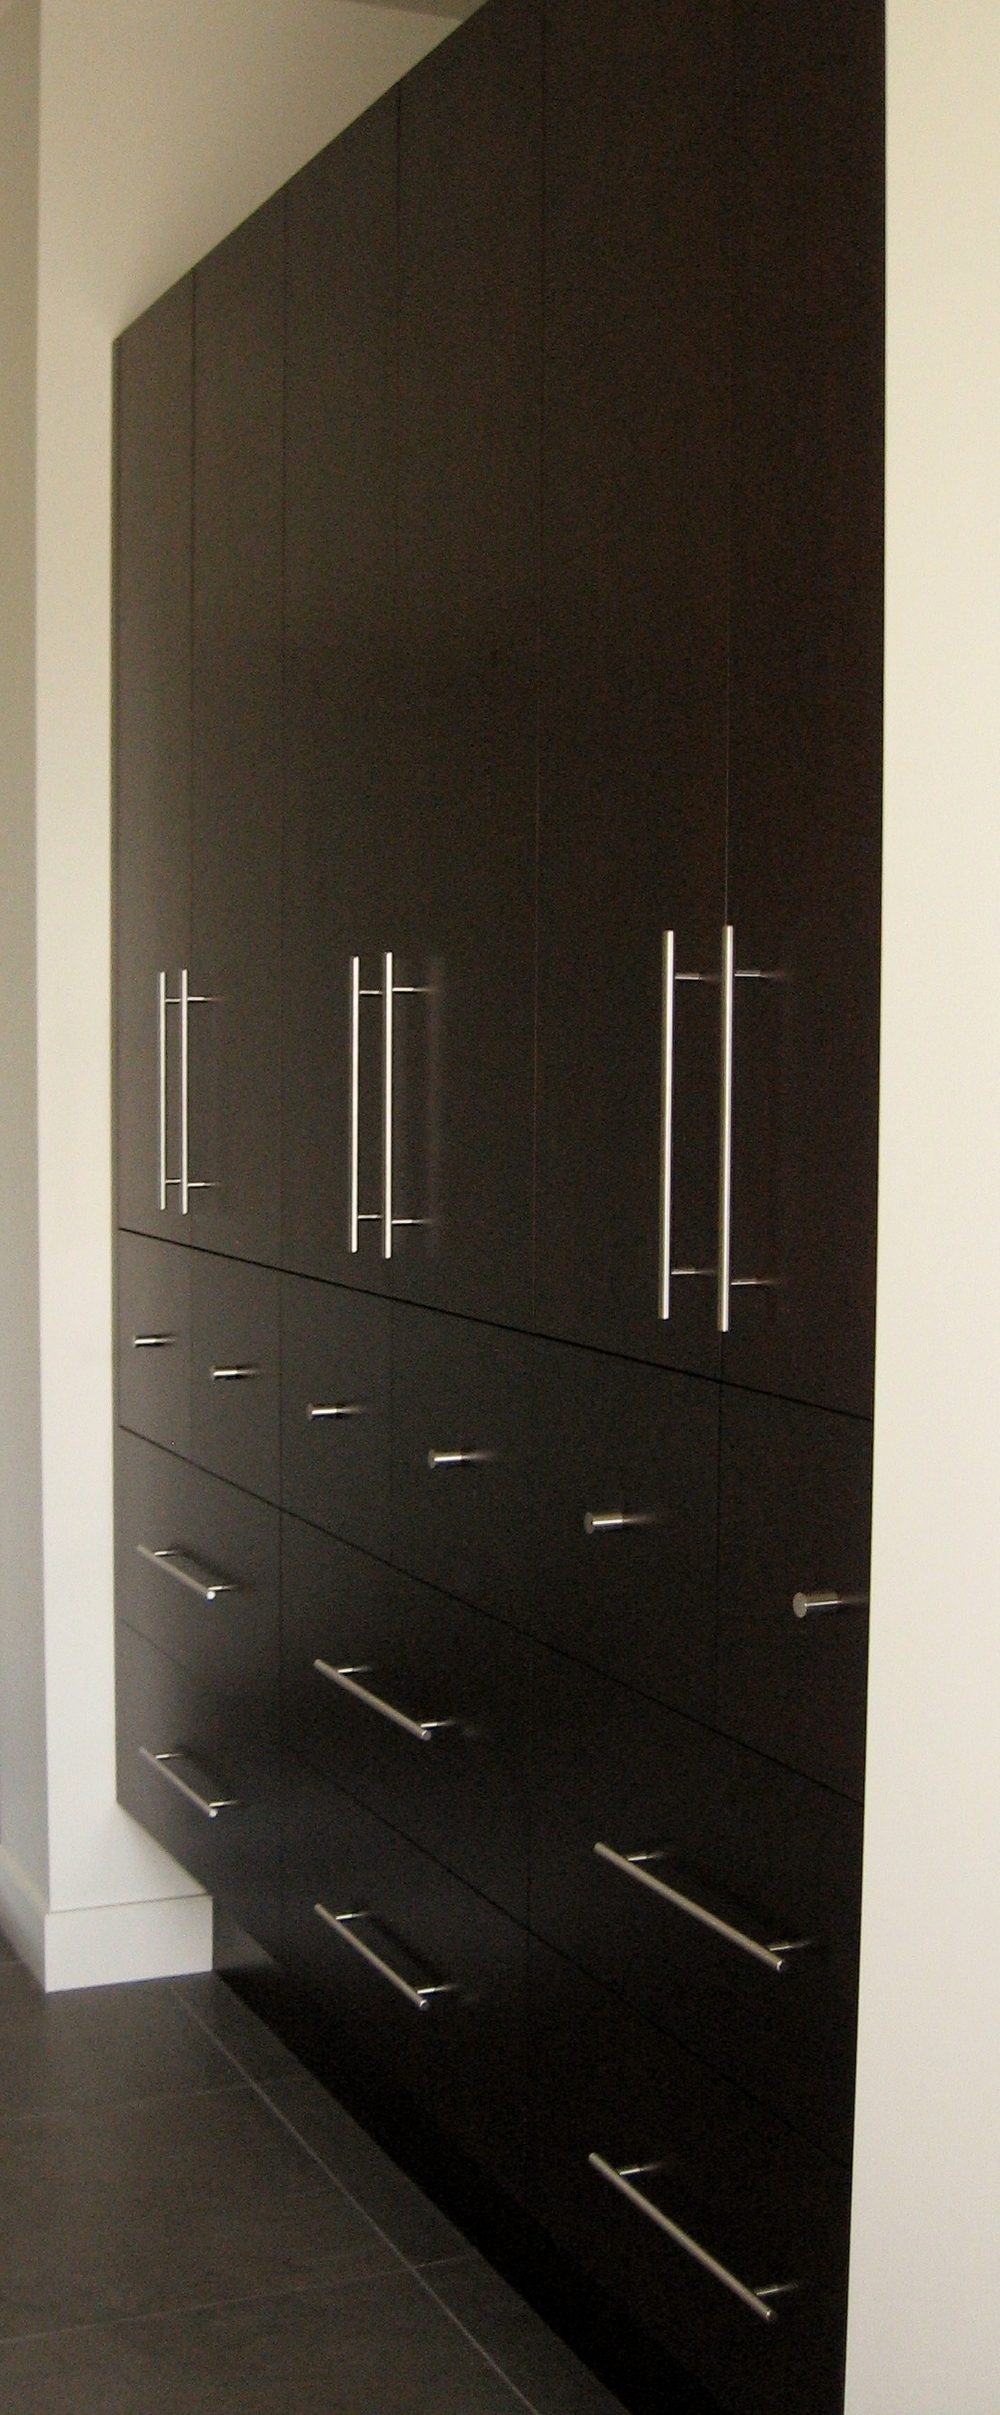 built-in-storage-cabinetry-closet.JPG